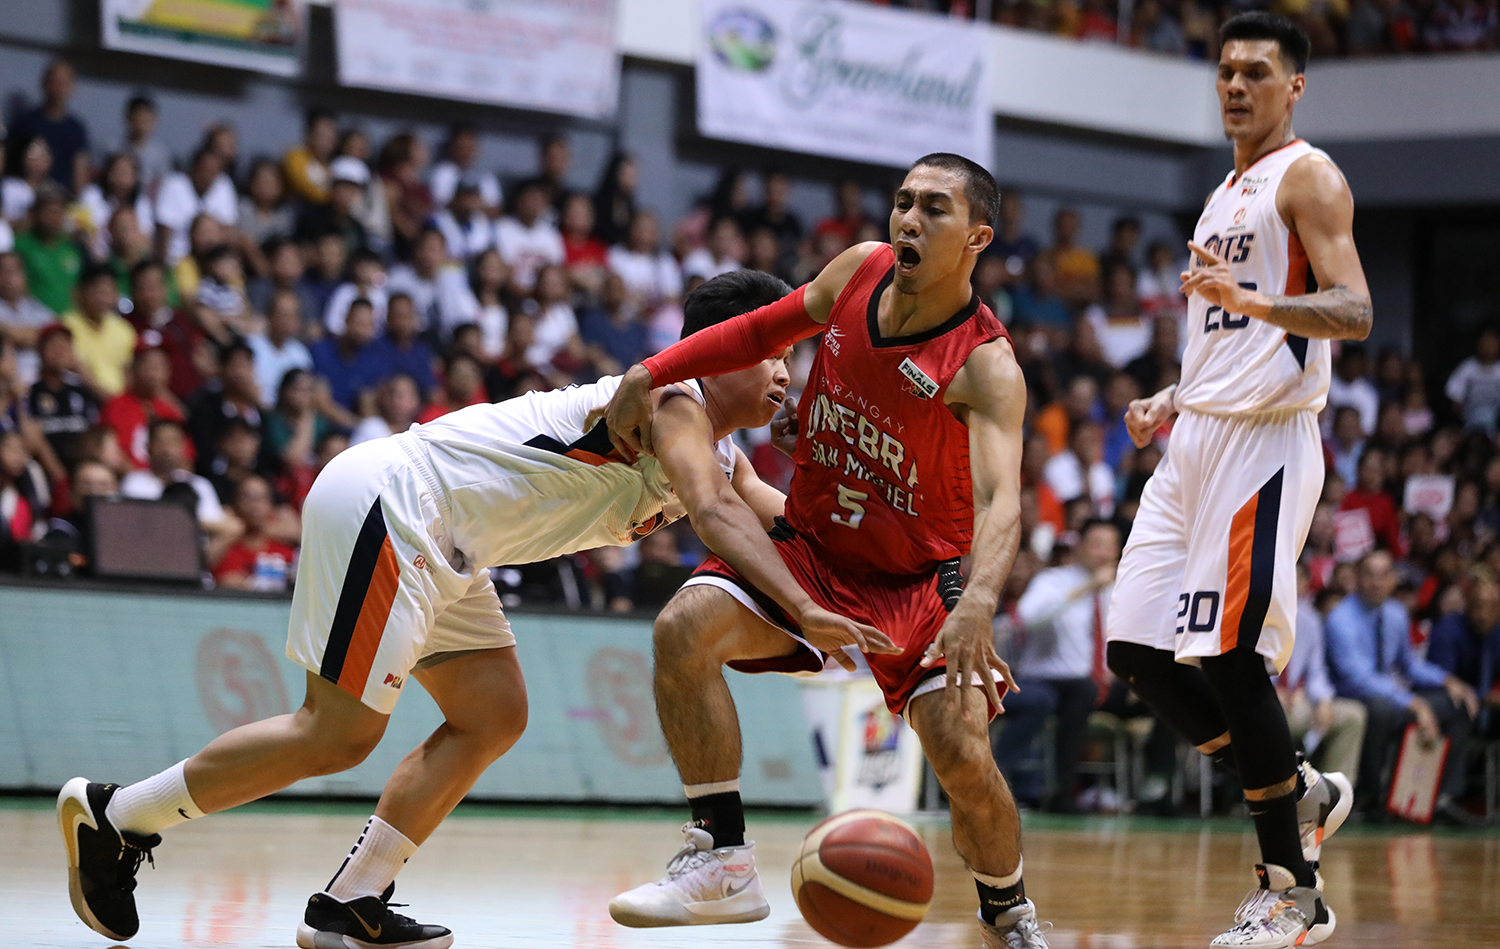 PBA Govs Cup Finals Game 2: Meralco edges Ginebra in Lucena thriller